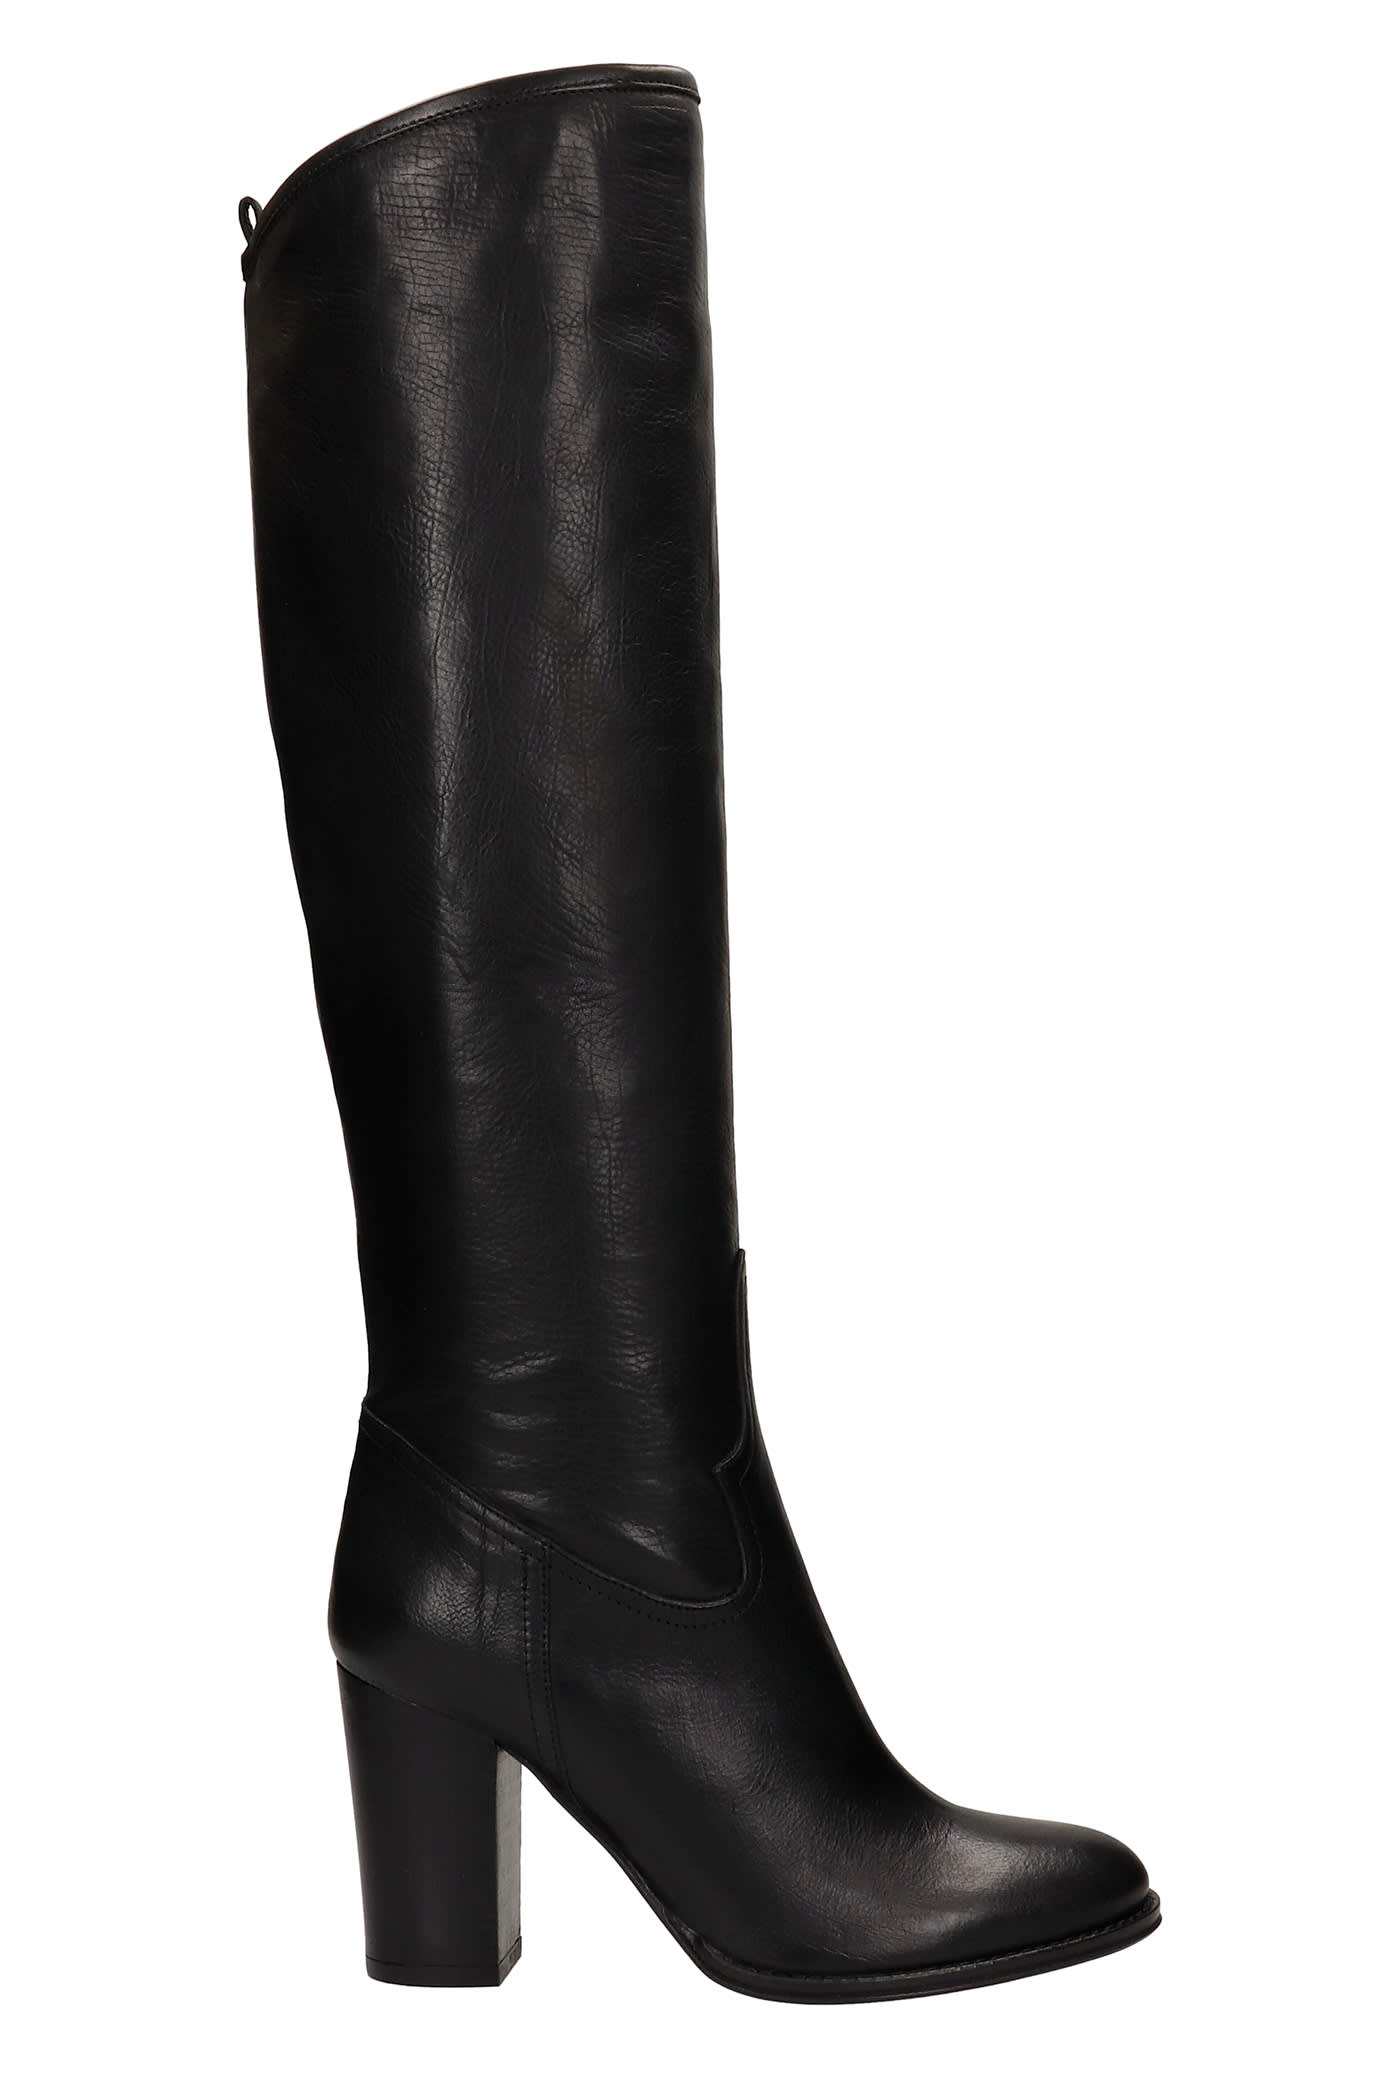 High Heels Boots In Black Leather